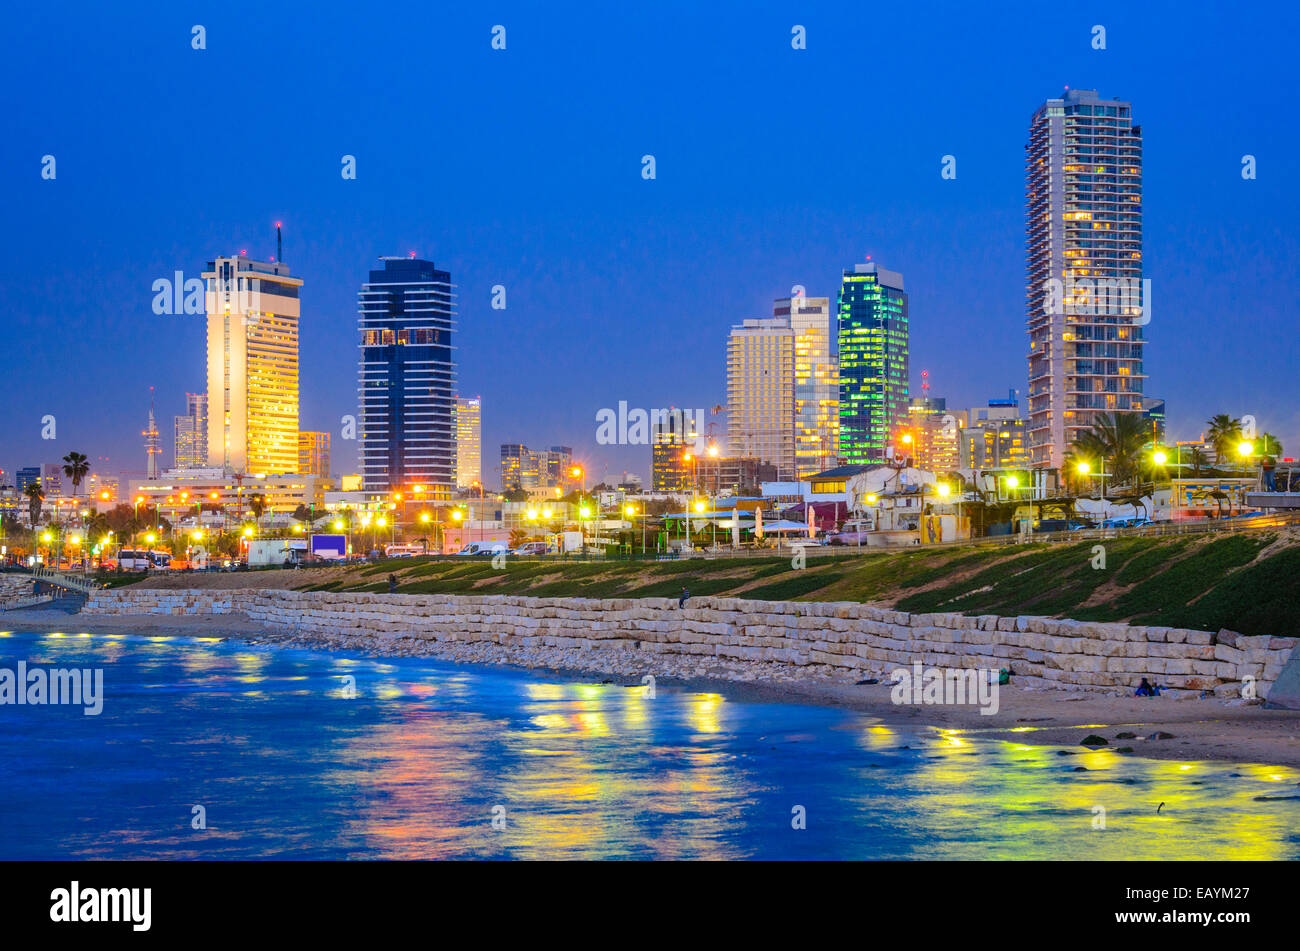 Tel Aviv, Israel Skyline on the Mediterranean. - Stock Image